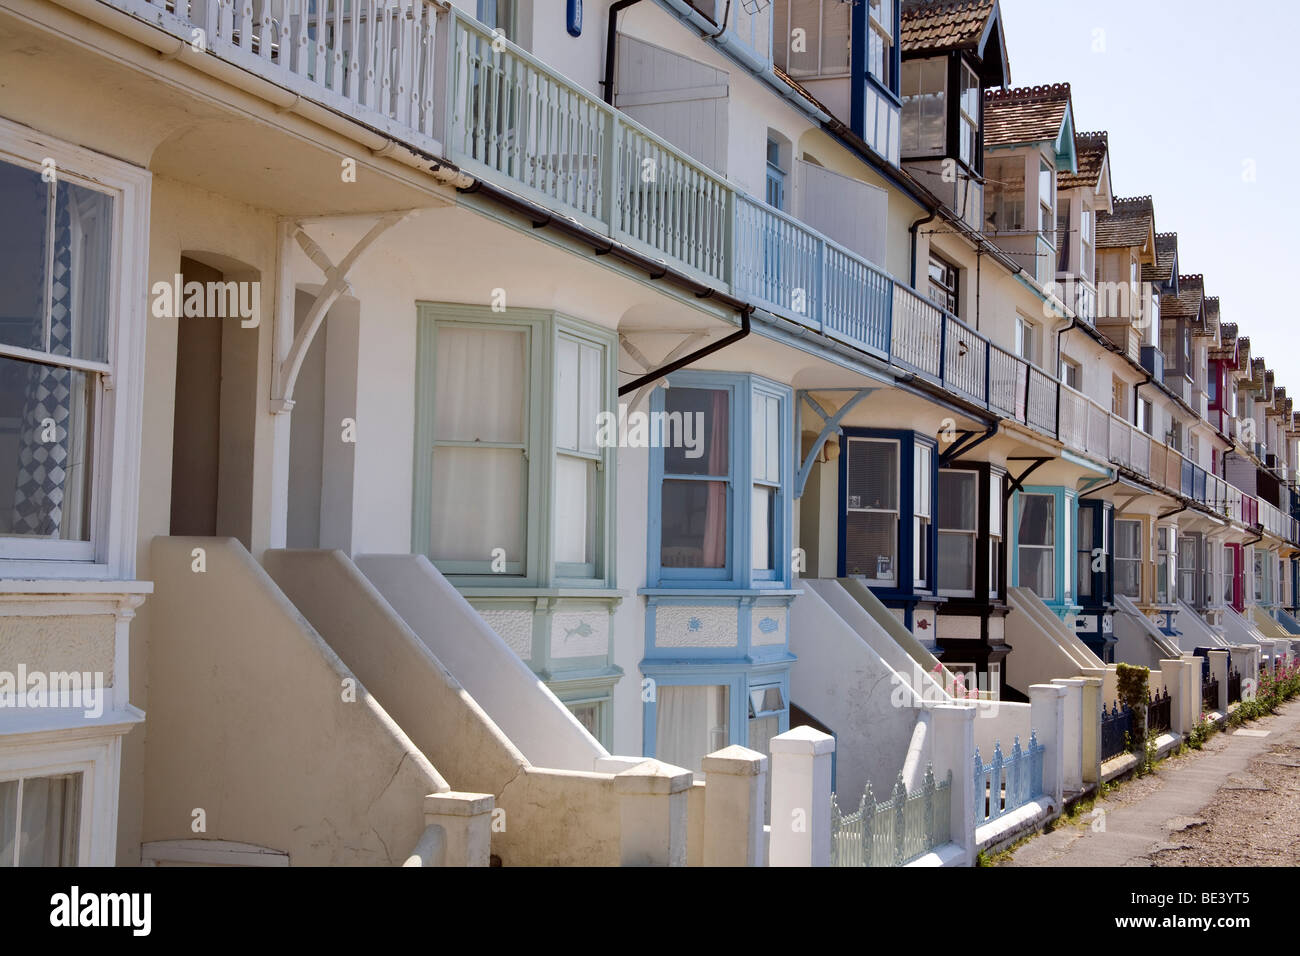 Row of terraced houses on the beach front Whitstable Kent, UK - Stock Image